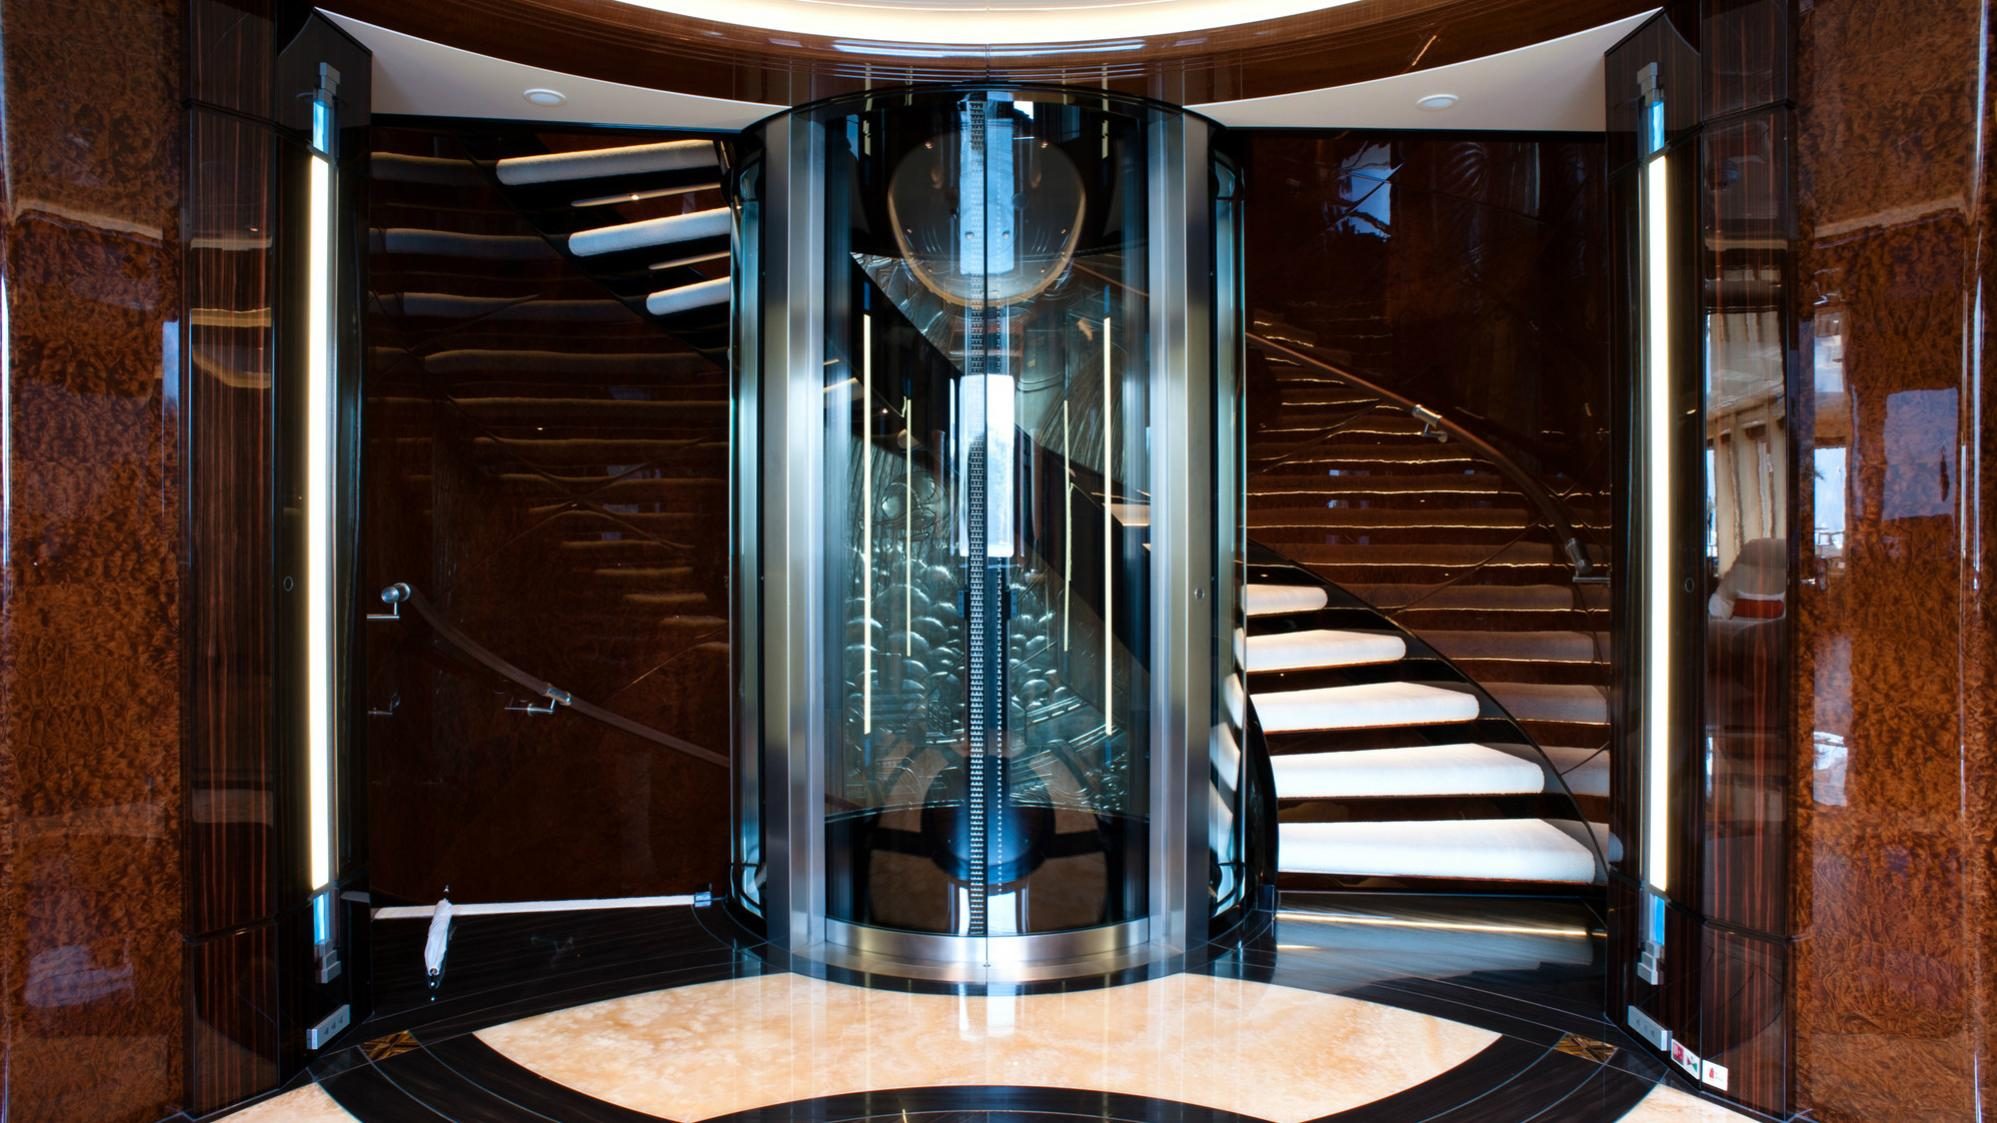 Excellence-V-motor-yacht-abeking-rasmussen-2012-60m-staircase